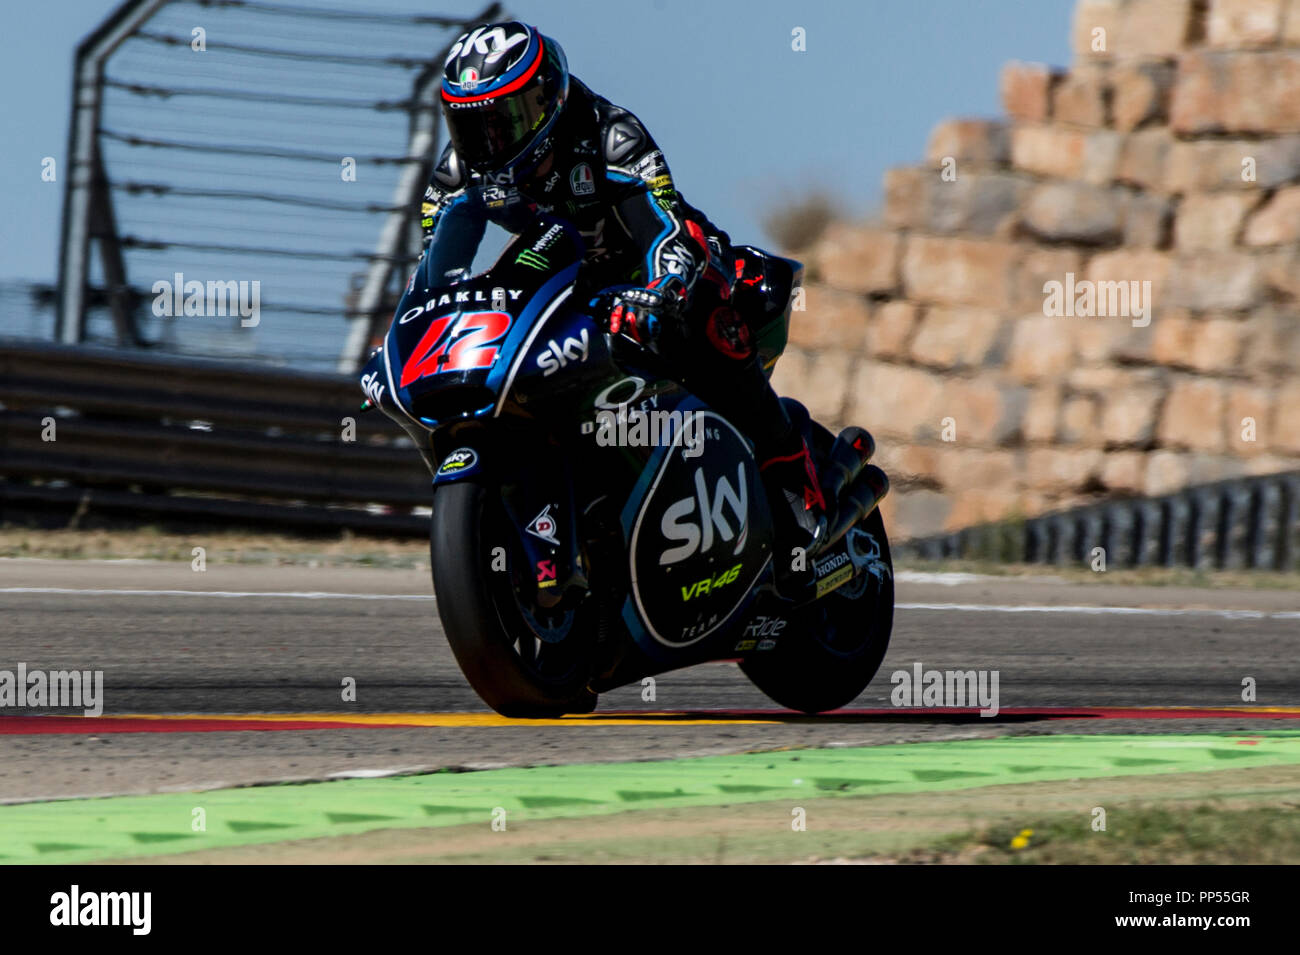 Alcaniz, Spain. 23rd September 2018. Motorcycling MotoGP of Aragon, race day; Moto2 Francesco Bagnaia (SKY racing Team VR46) in action Credit: Action Plus Sports Images/Alamy Live News - Stock Image